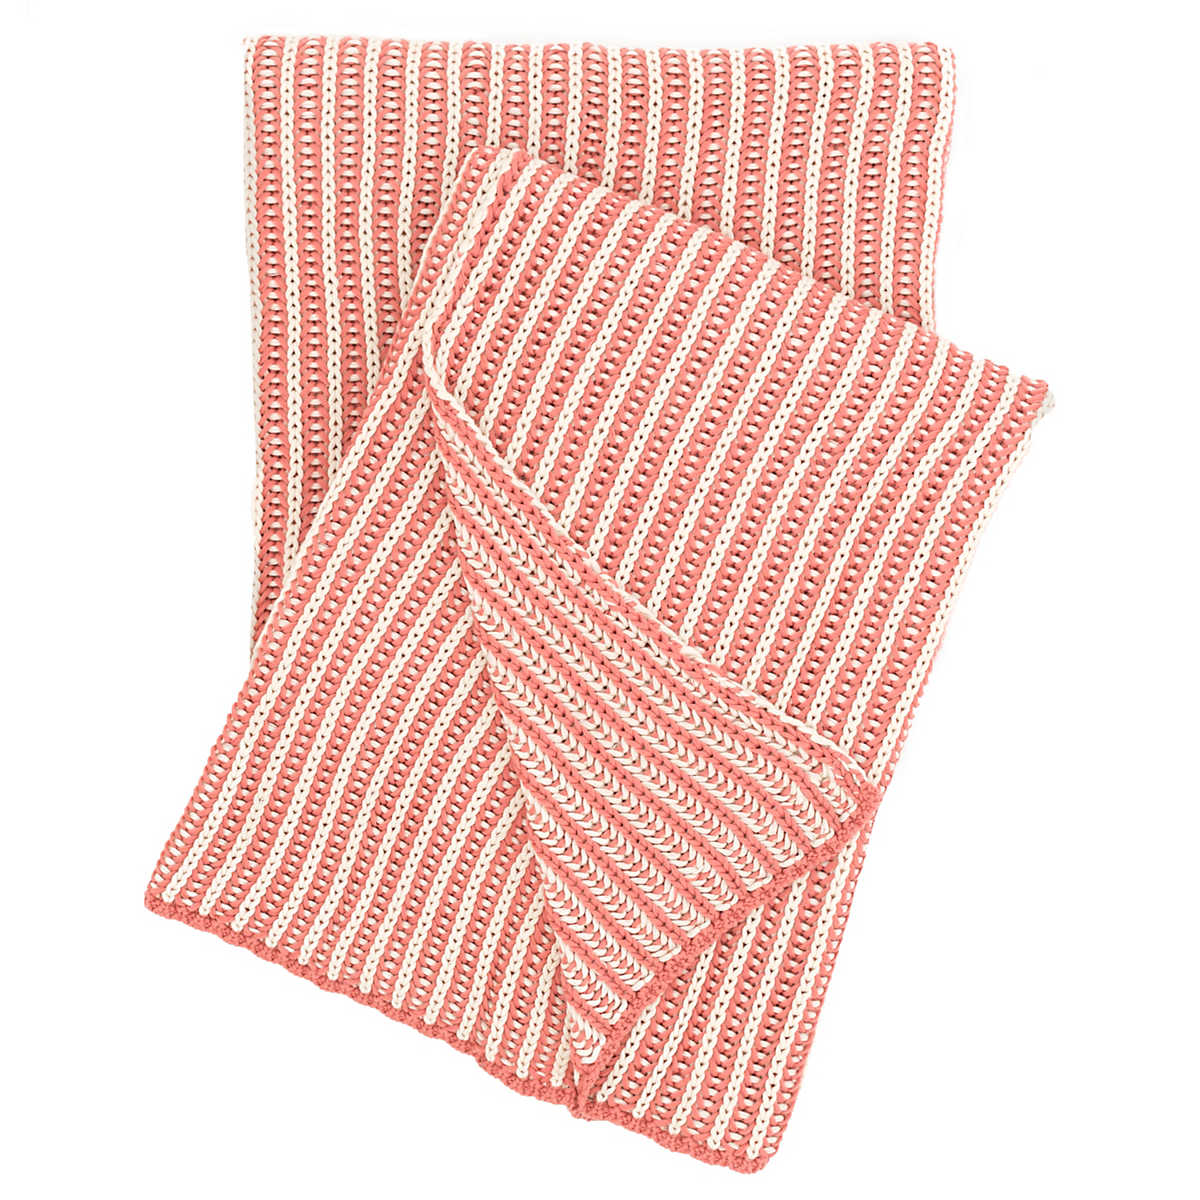 avery coral cotton blanket  the outlet - cozy knit coral throw